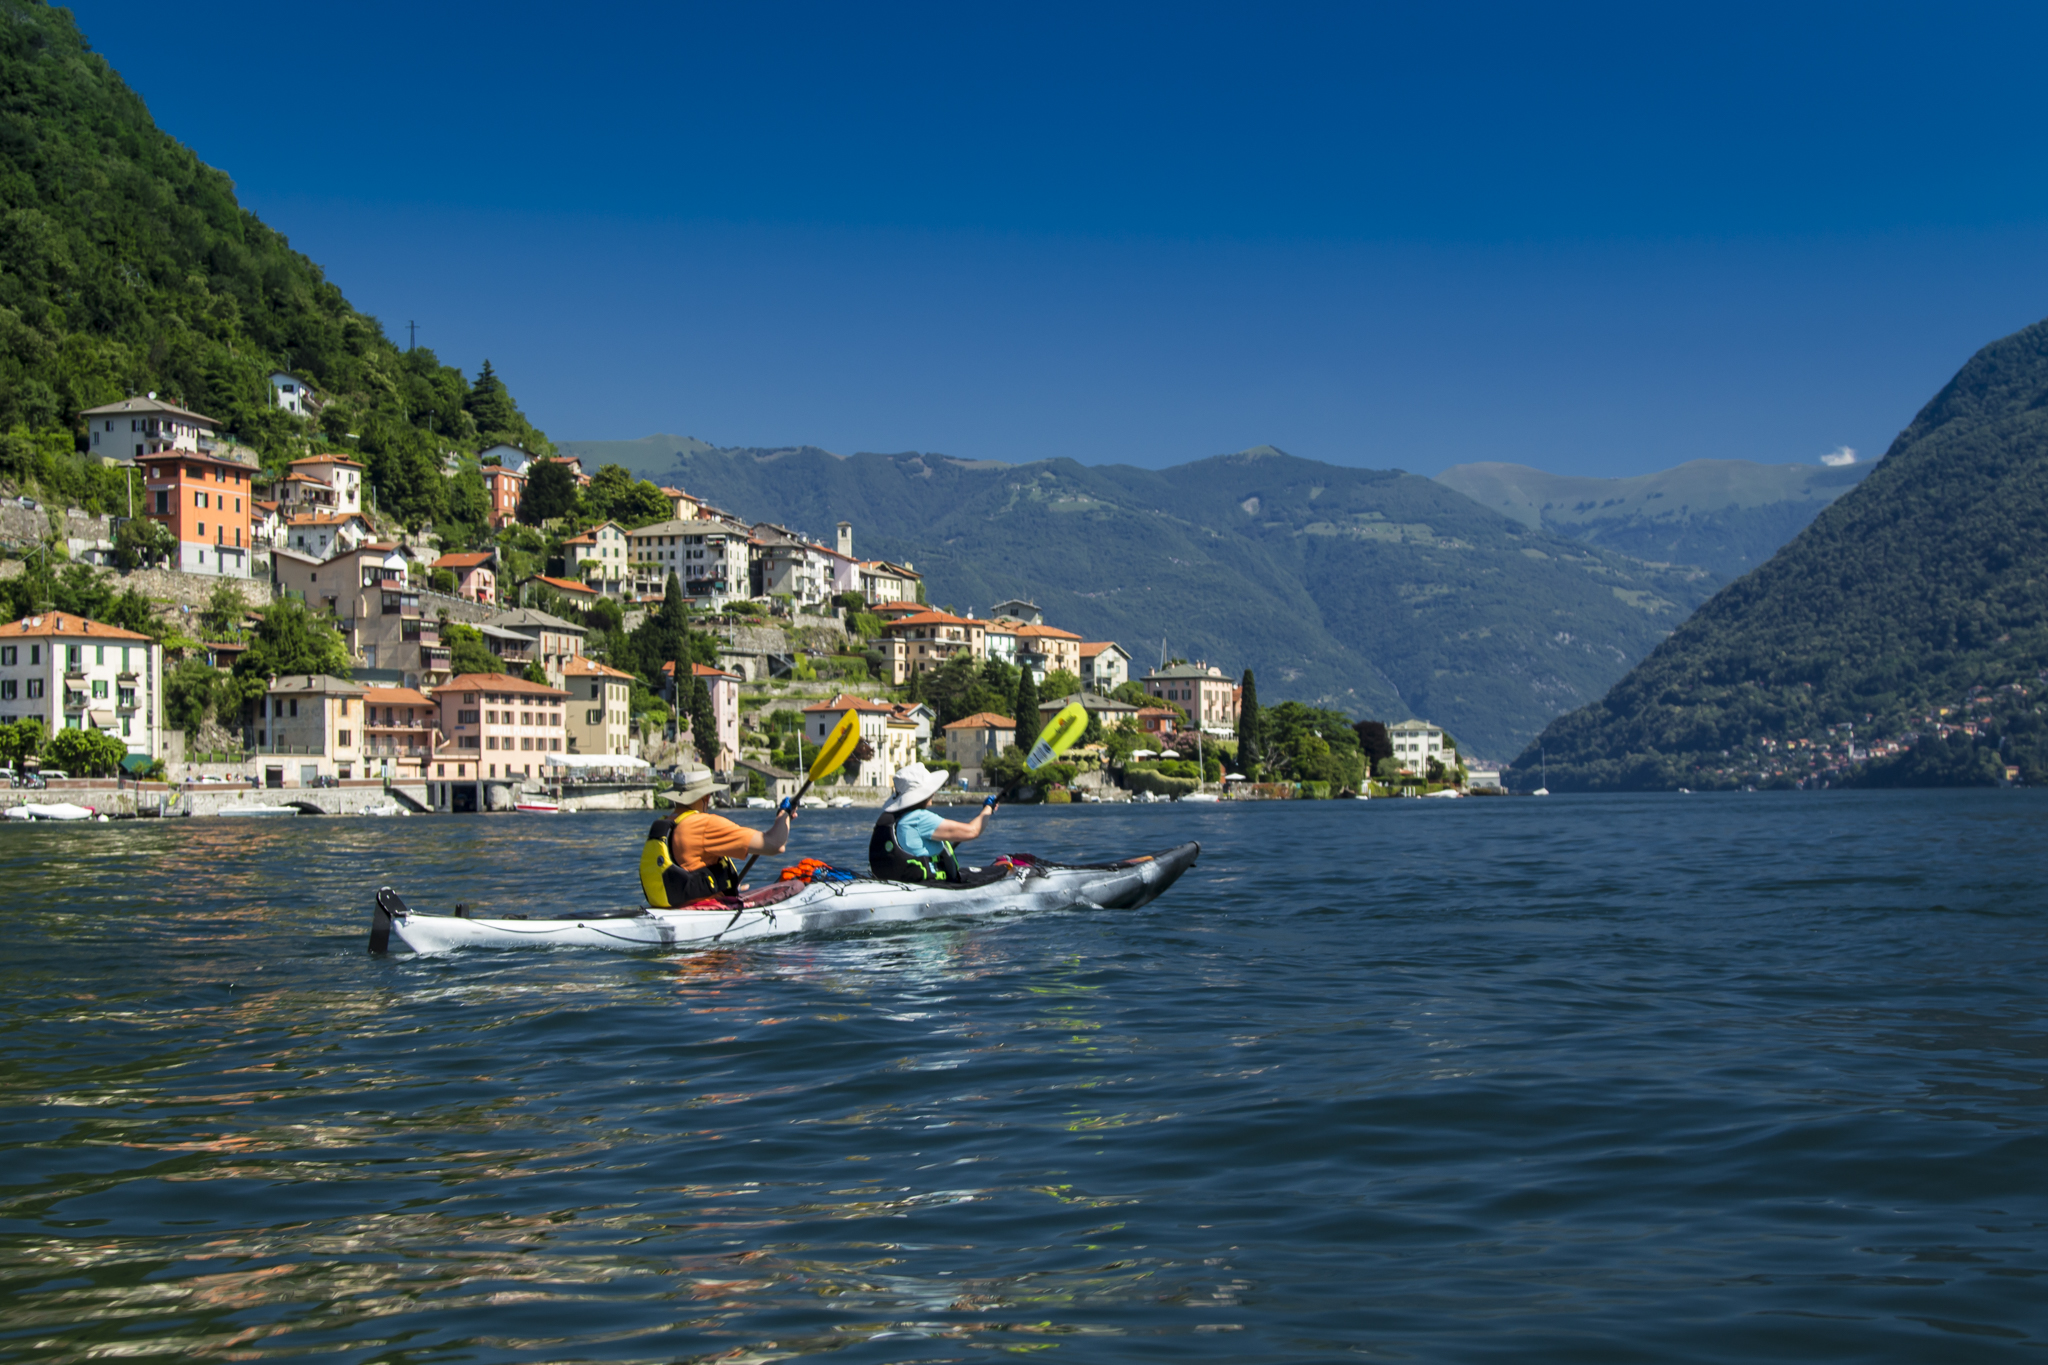 Kayaking Lago Como